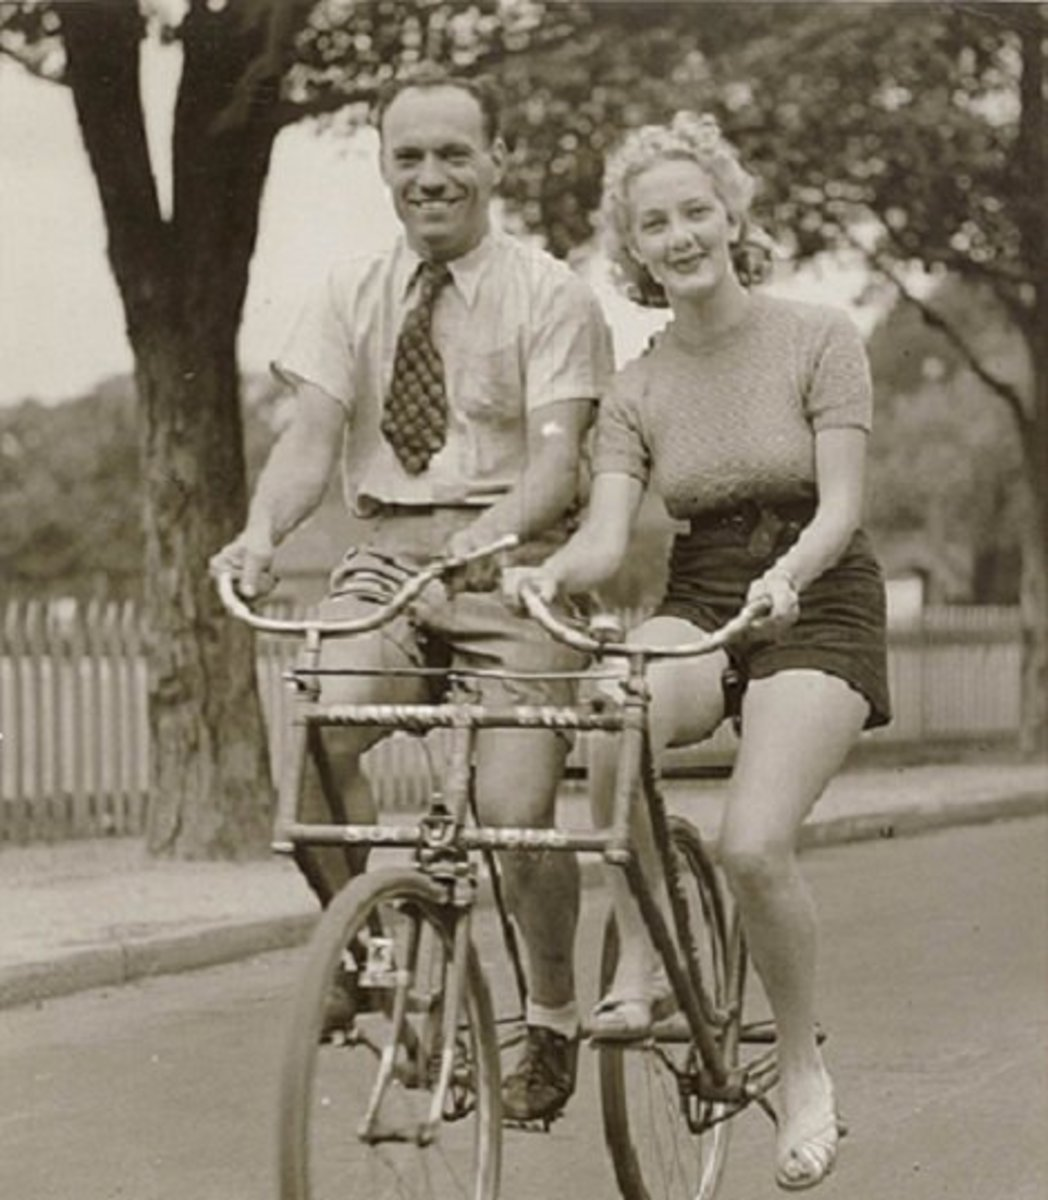 Man and woman on a Malvern Star abreast tandem bicycle around 1930.